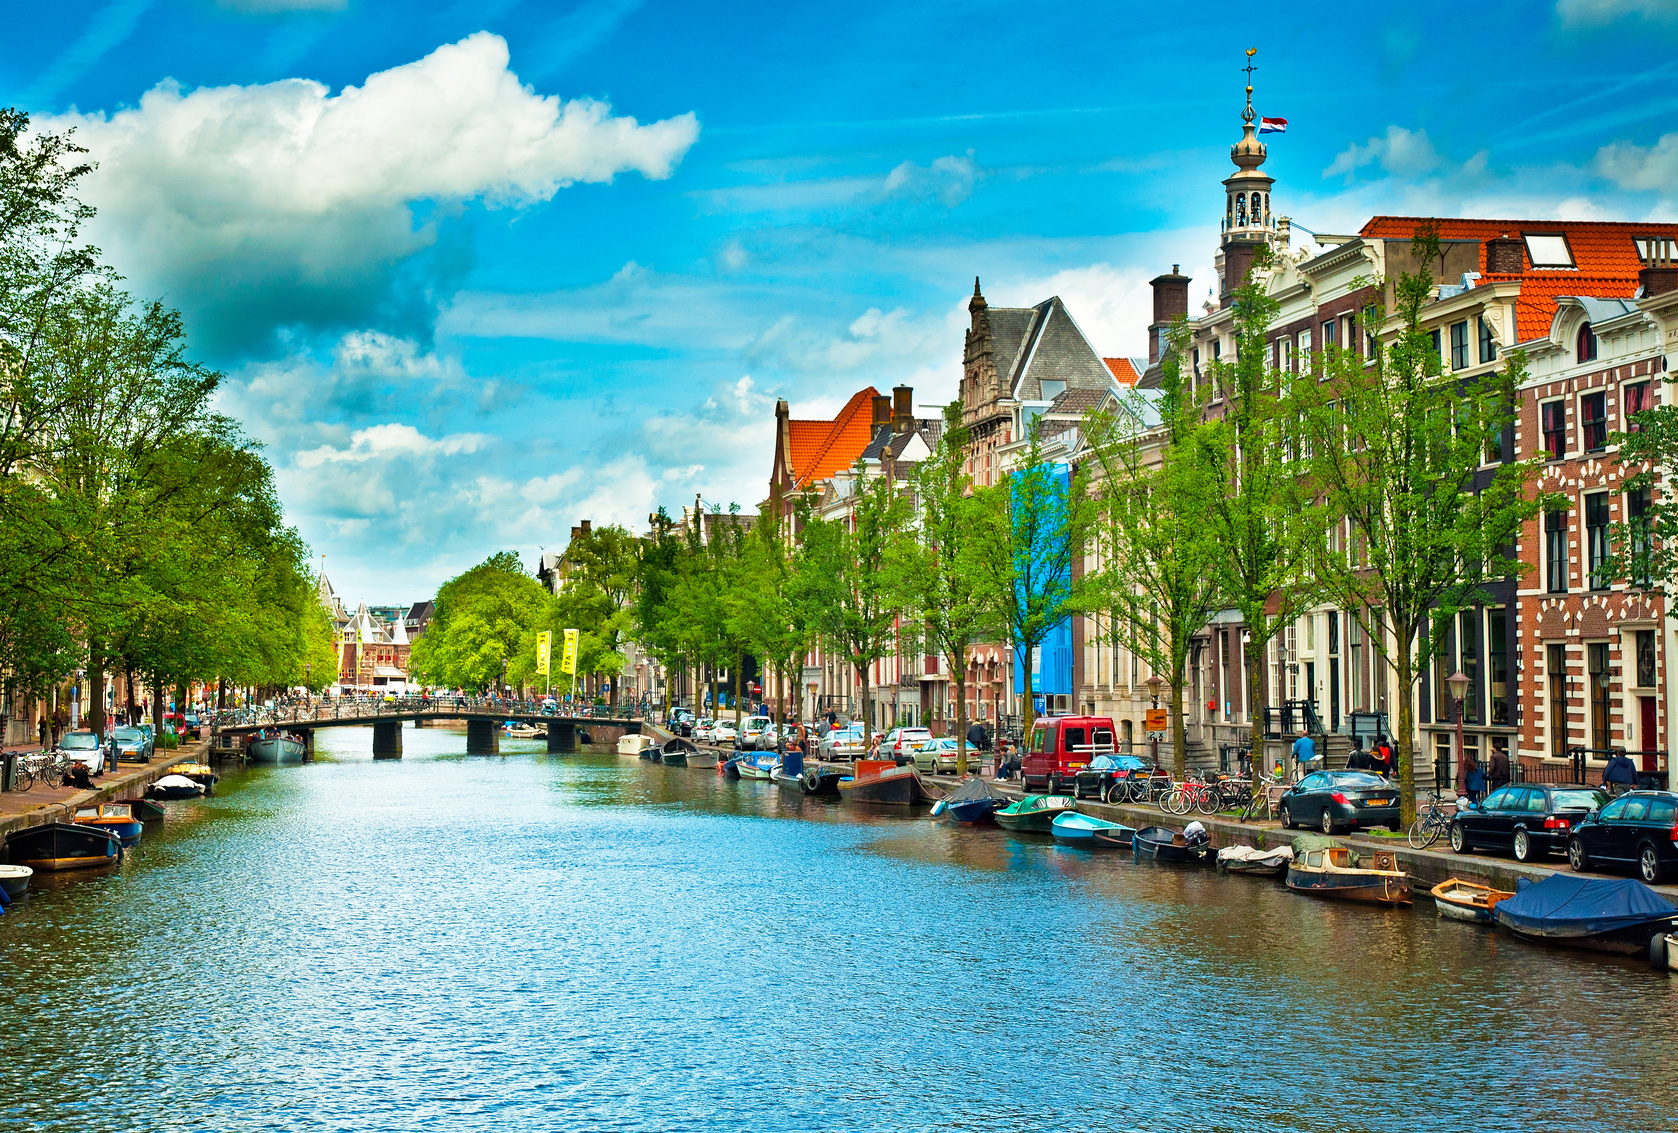 amsterdam_canals_Fotolia_62385579_Subscription_Monthly_M.jpg